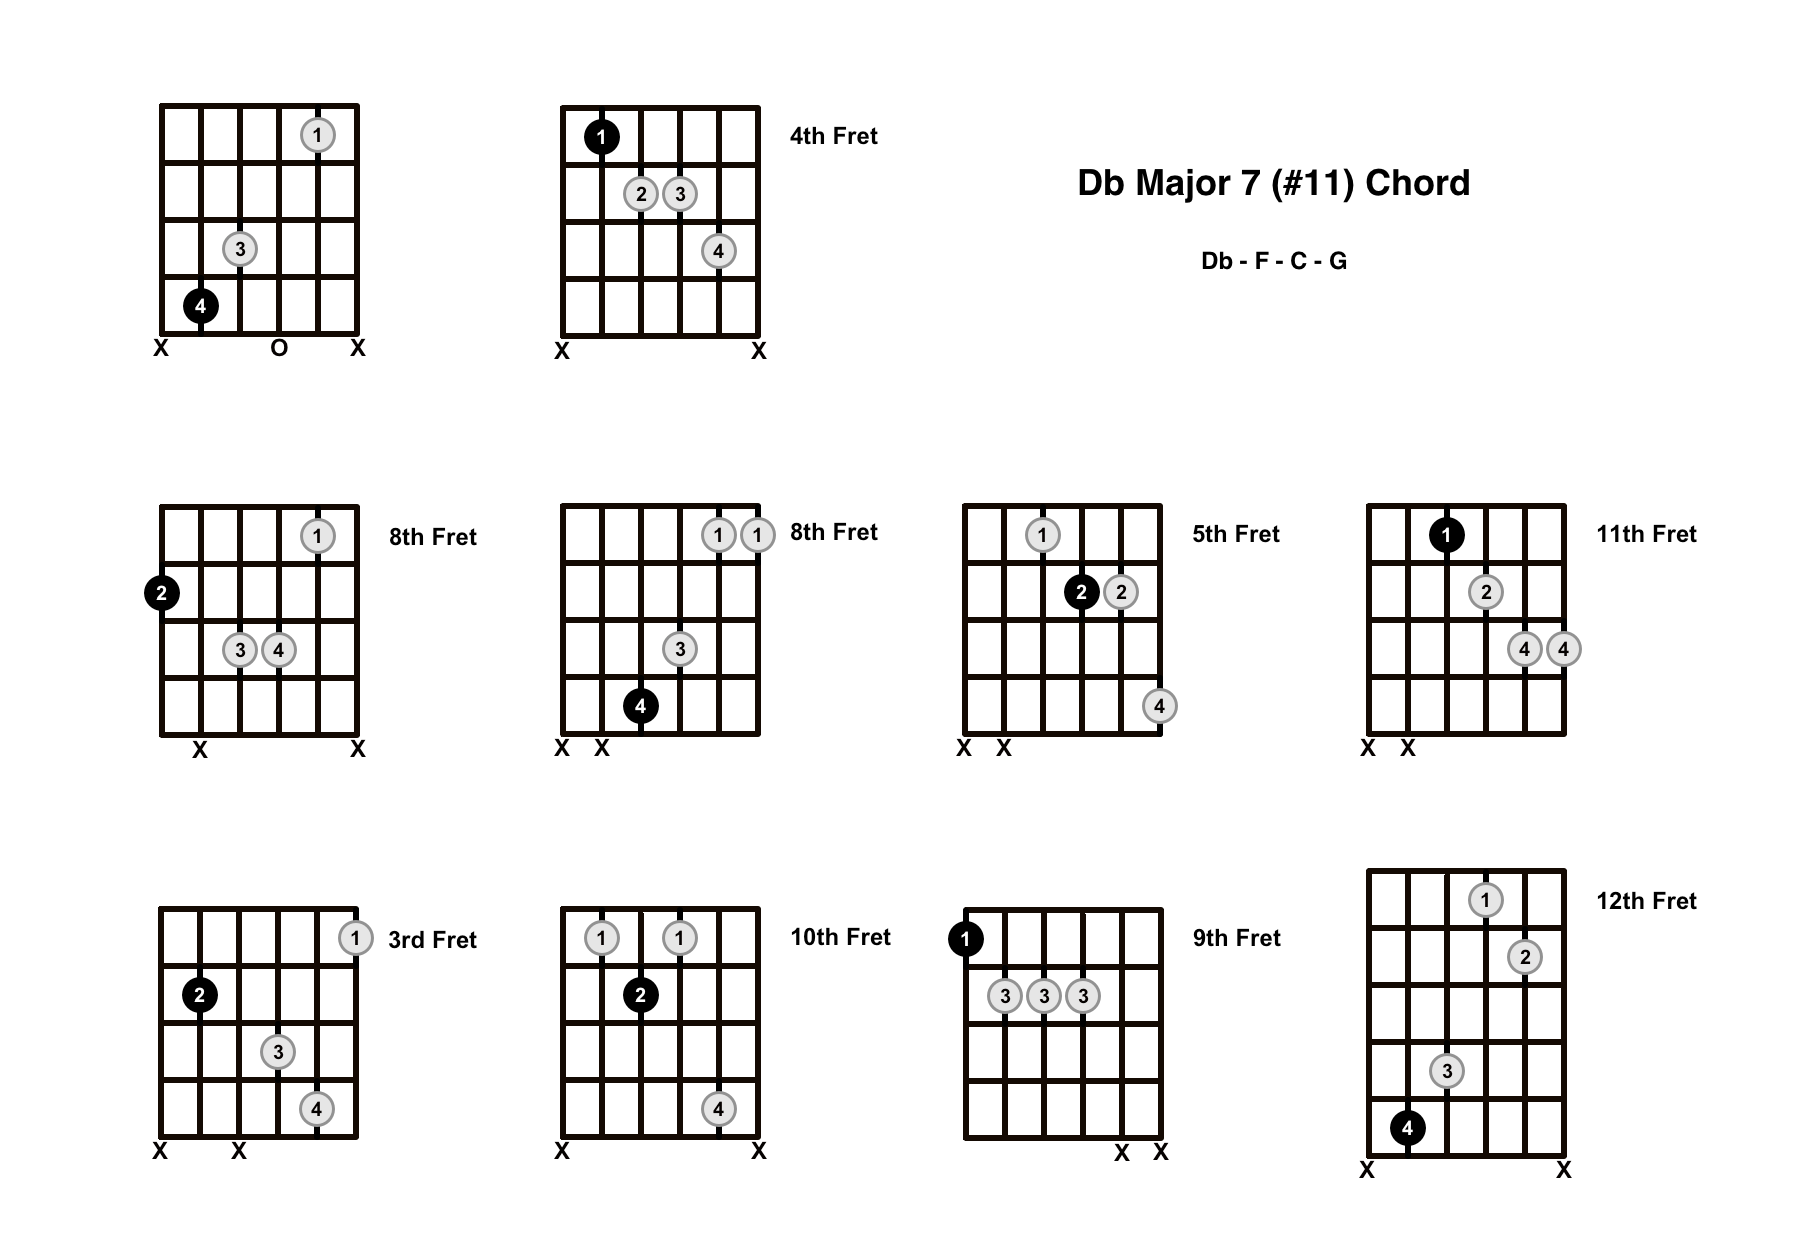 Dbmaj7#11 Chord On The Guitar (D Flat Major 7 #11) – Diagrams, Finger Positions and Theory